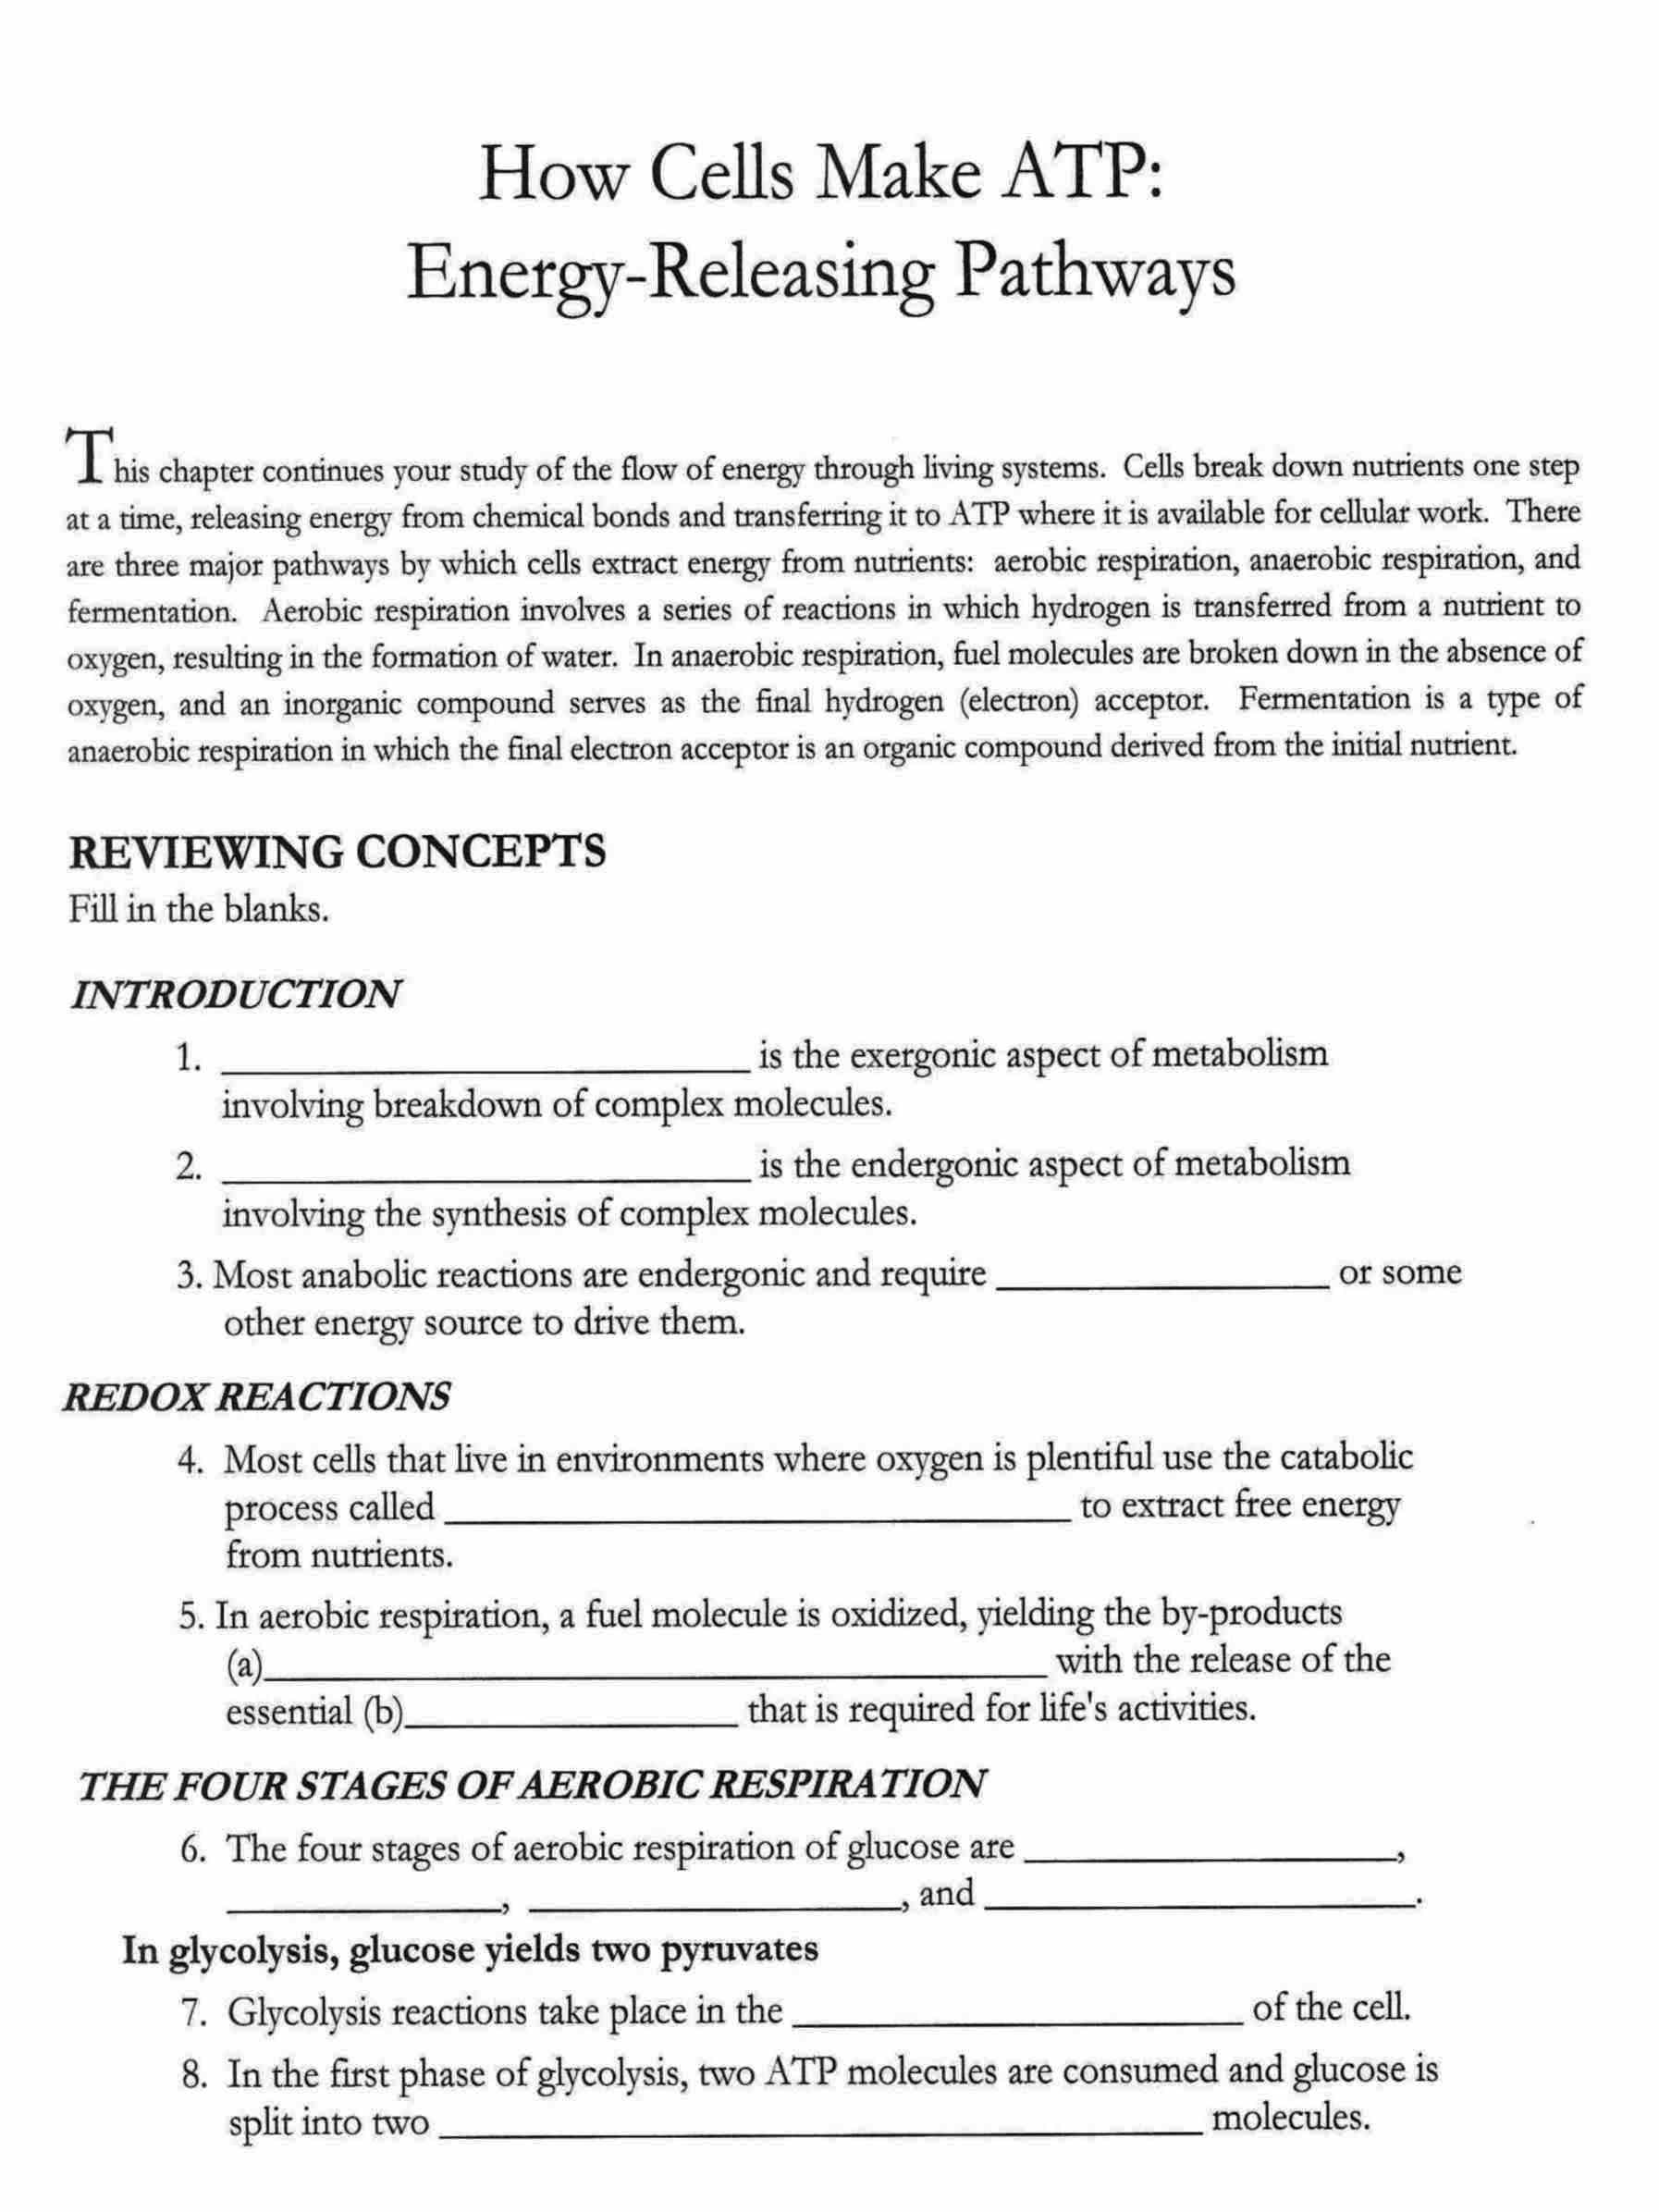 Free Worksheets Library Download and Print Worksheets – Photosynthesis and Cellular Respiration Worksheet Answers